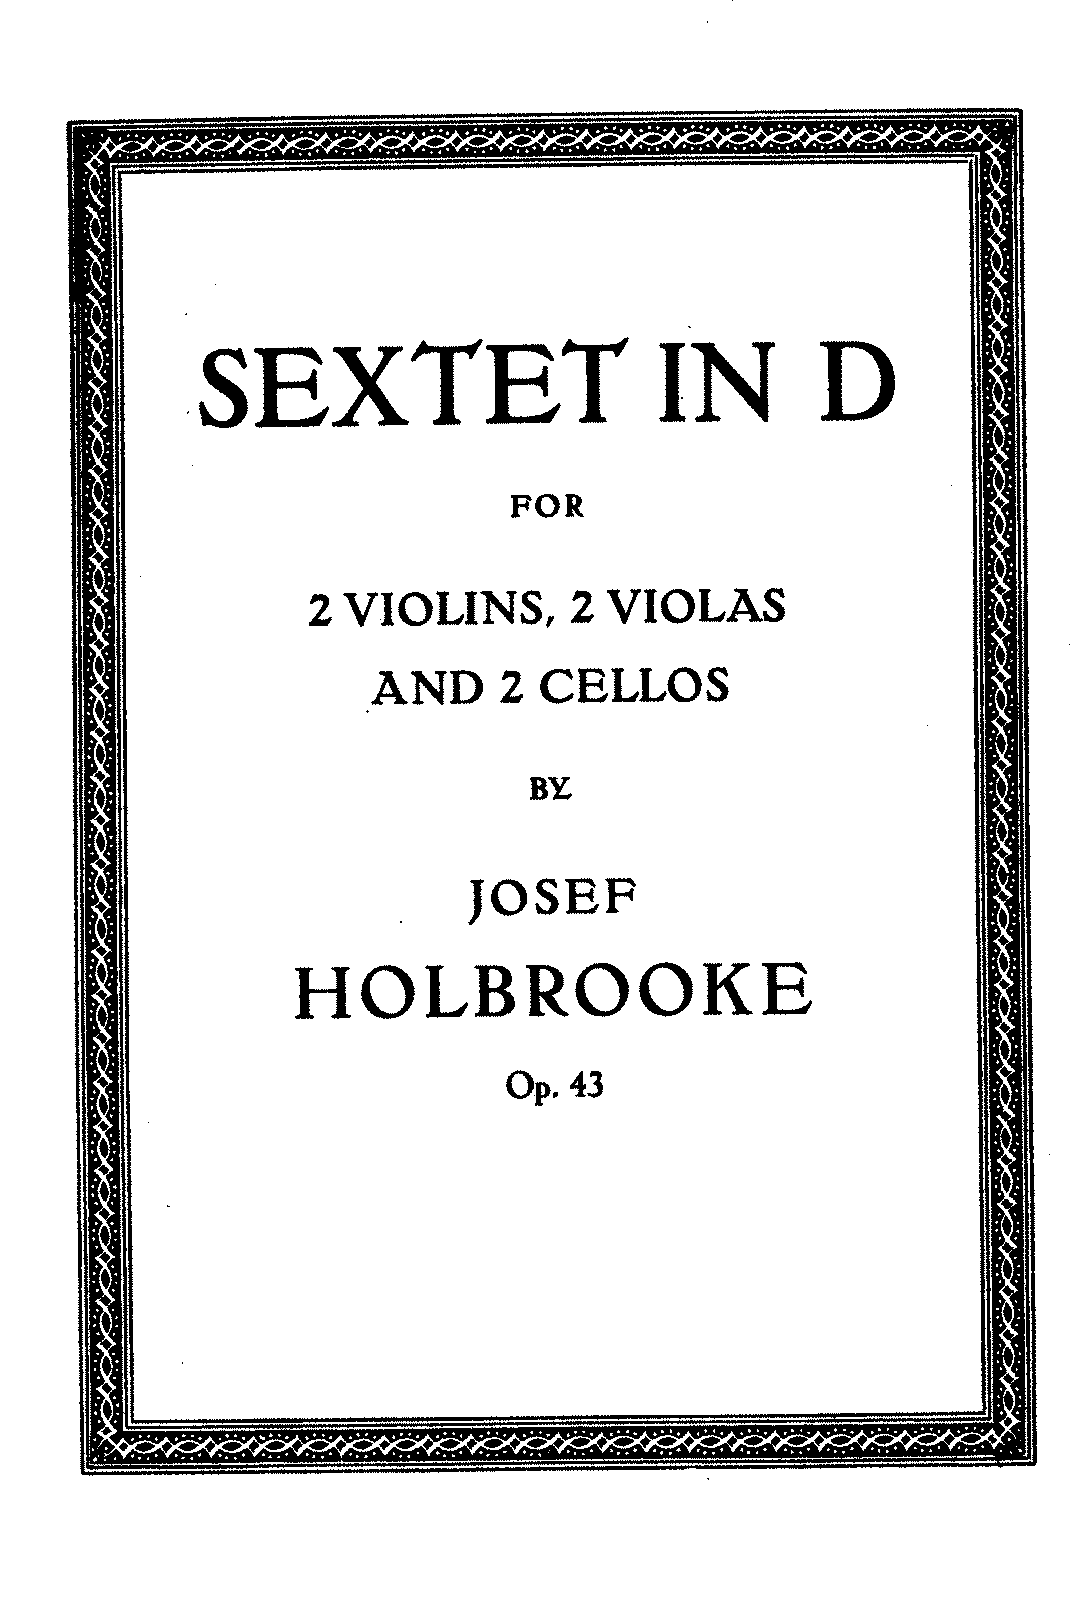 PMLP58261-Holbrooke - Sextet in D for 2 Violins, 2 Violas and 2 Cellos Op 43.pdf